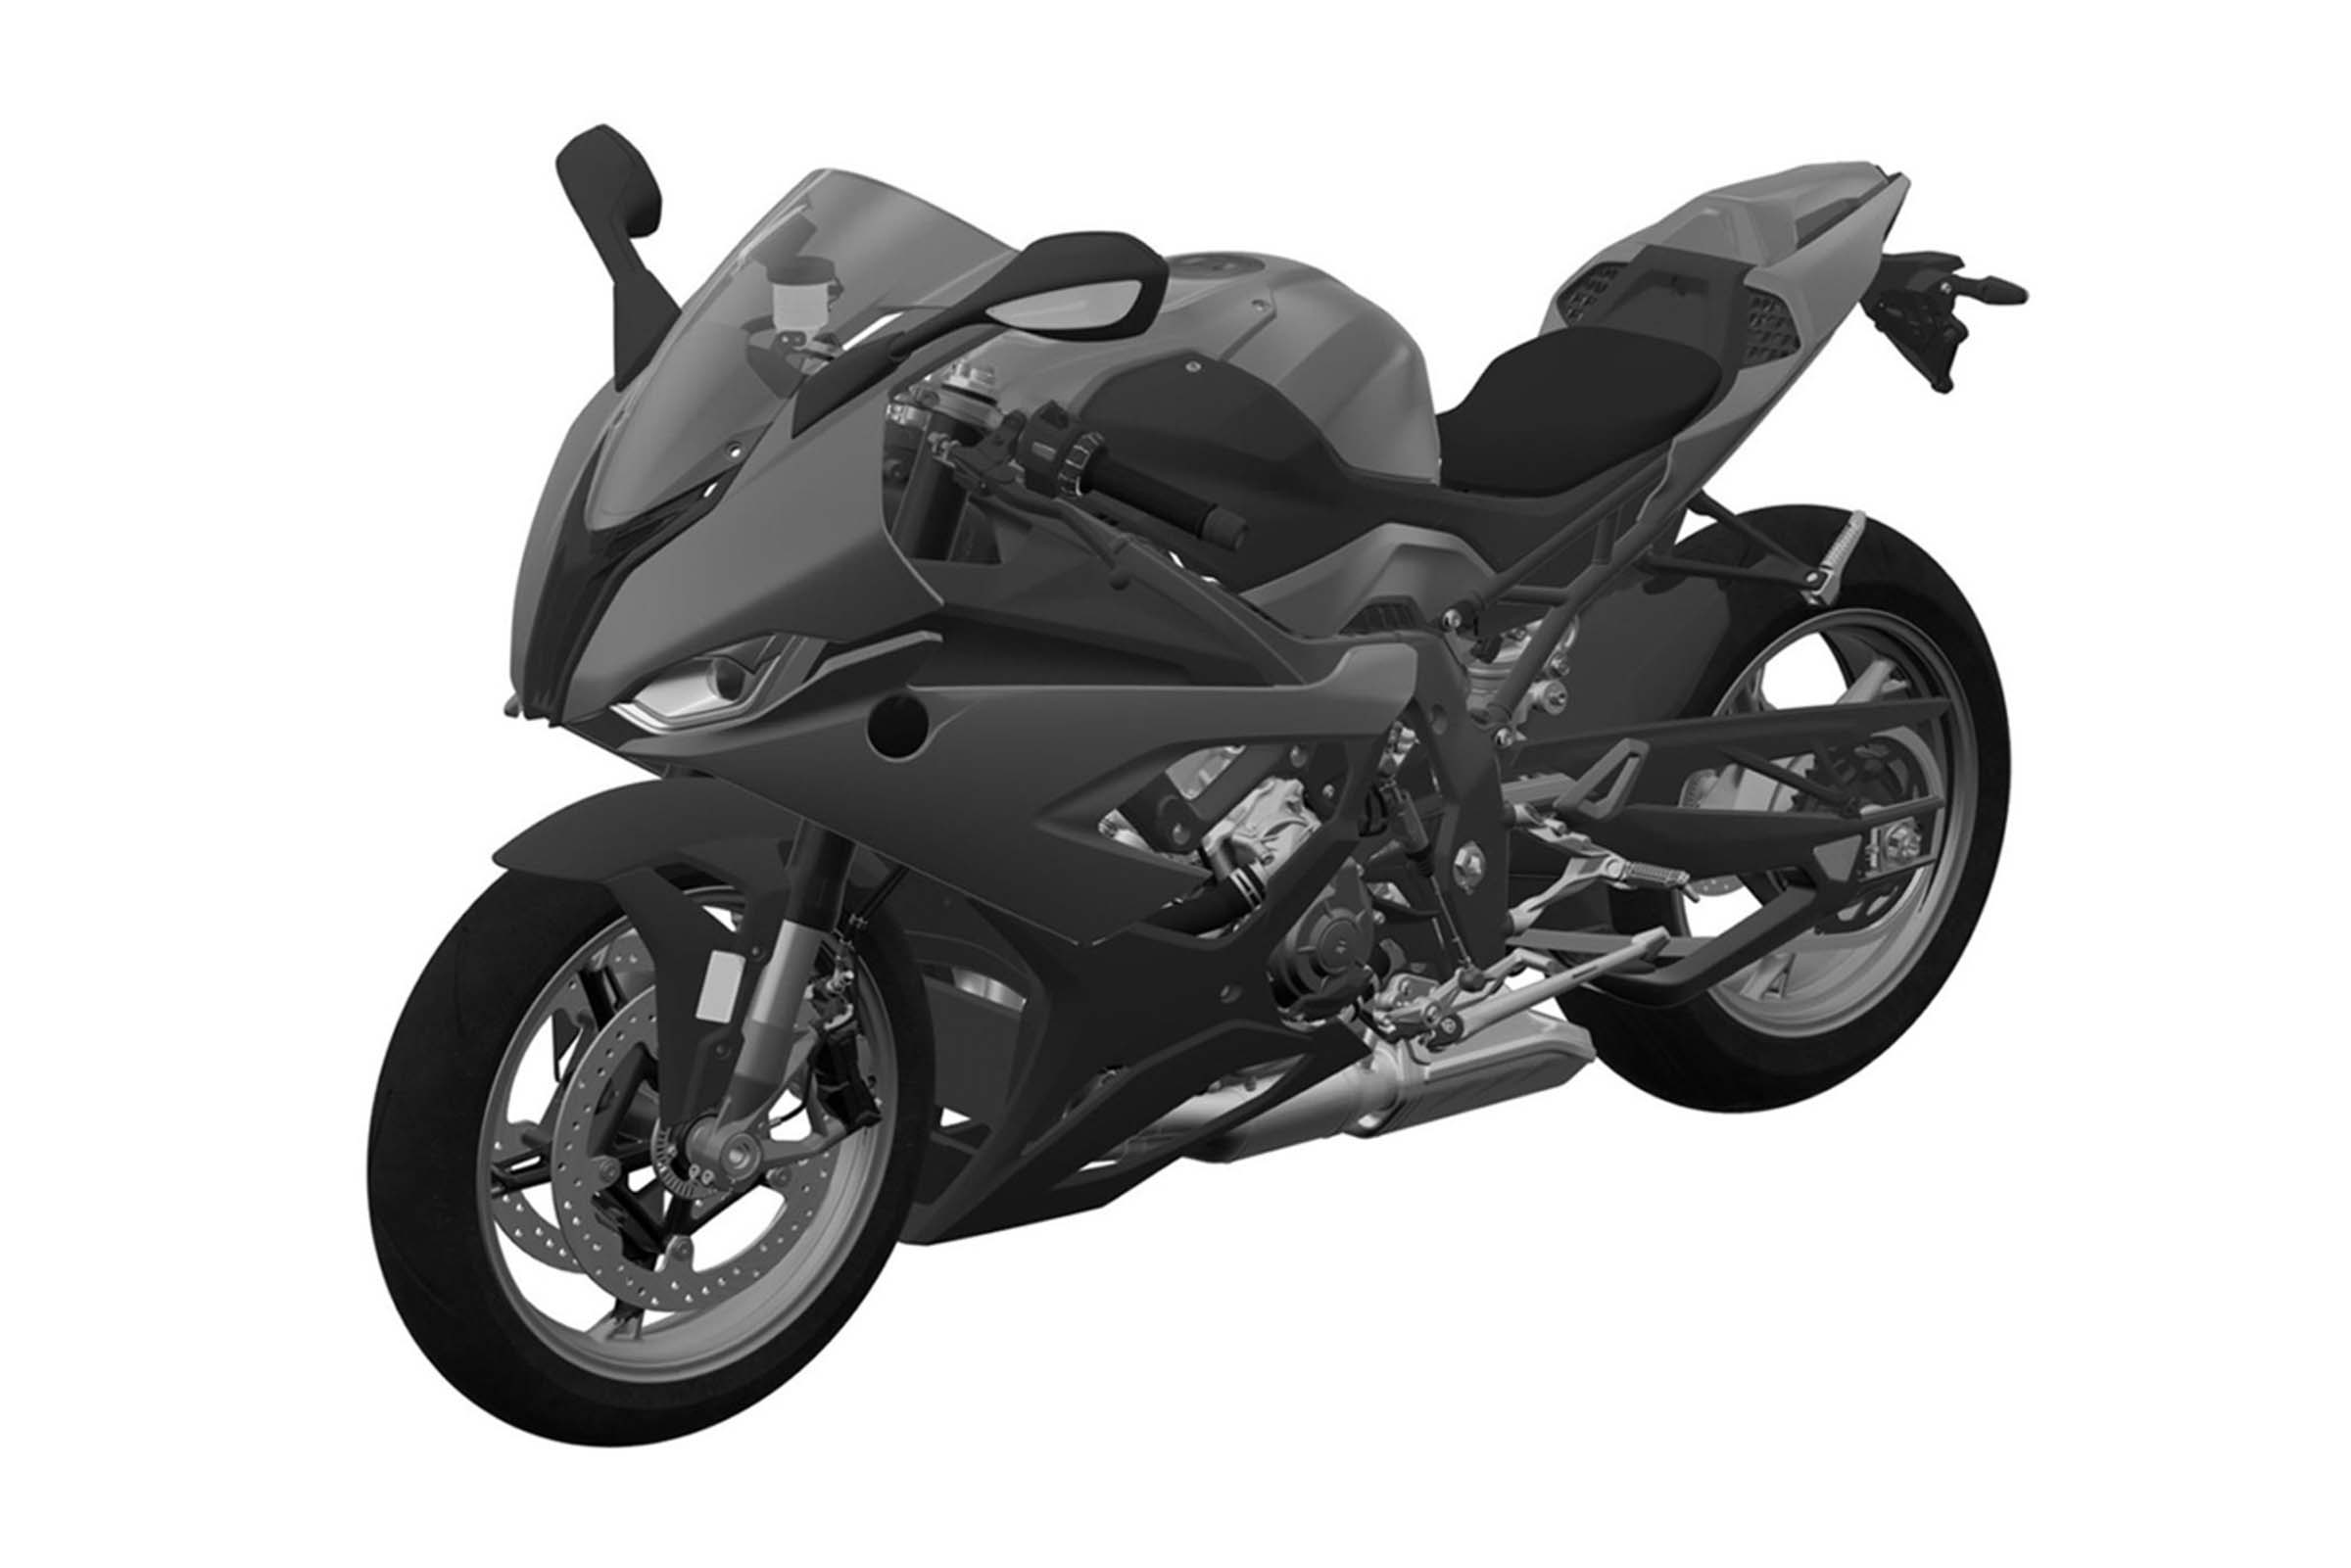 patent drawings of new bmw s1000rr surface canada moto guide. Black Bedroom Furniture Sets. Home Design Ideas